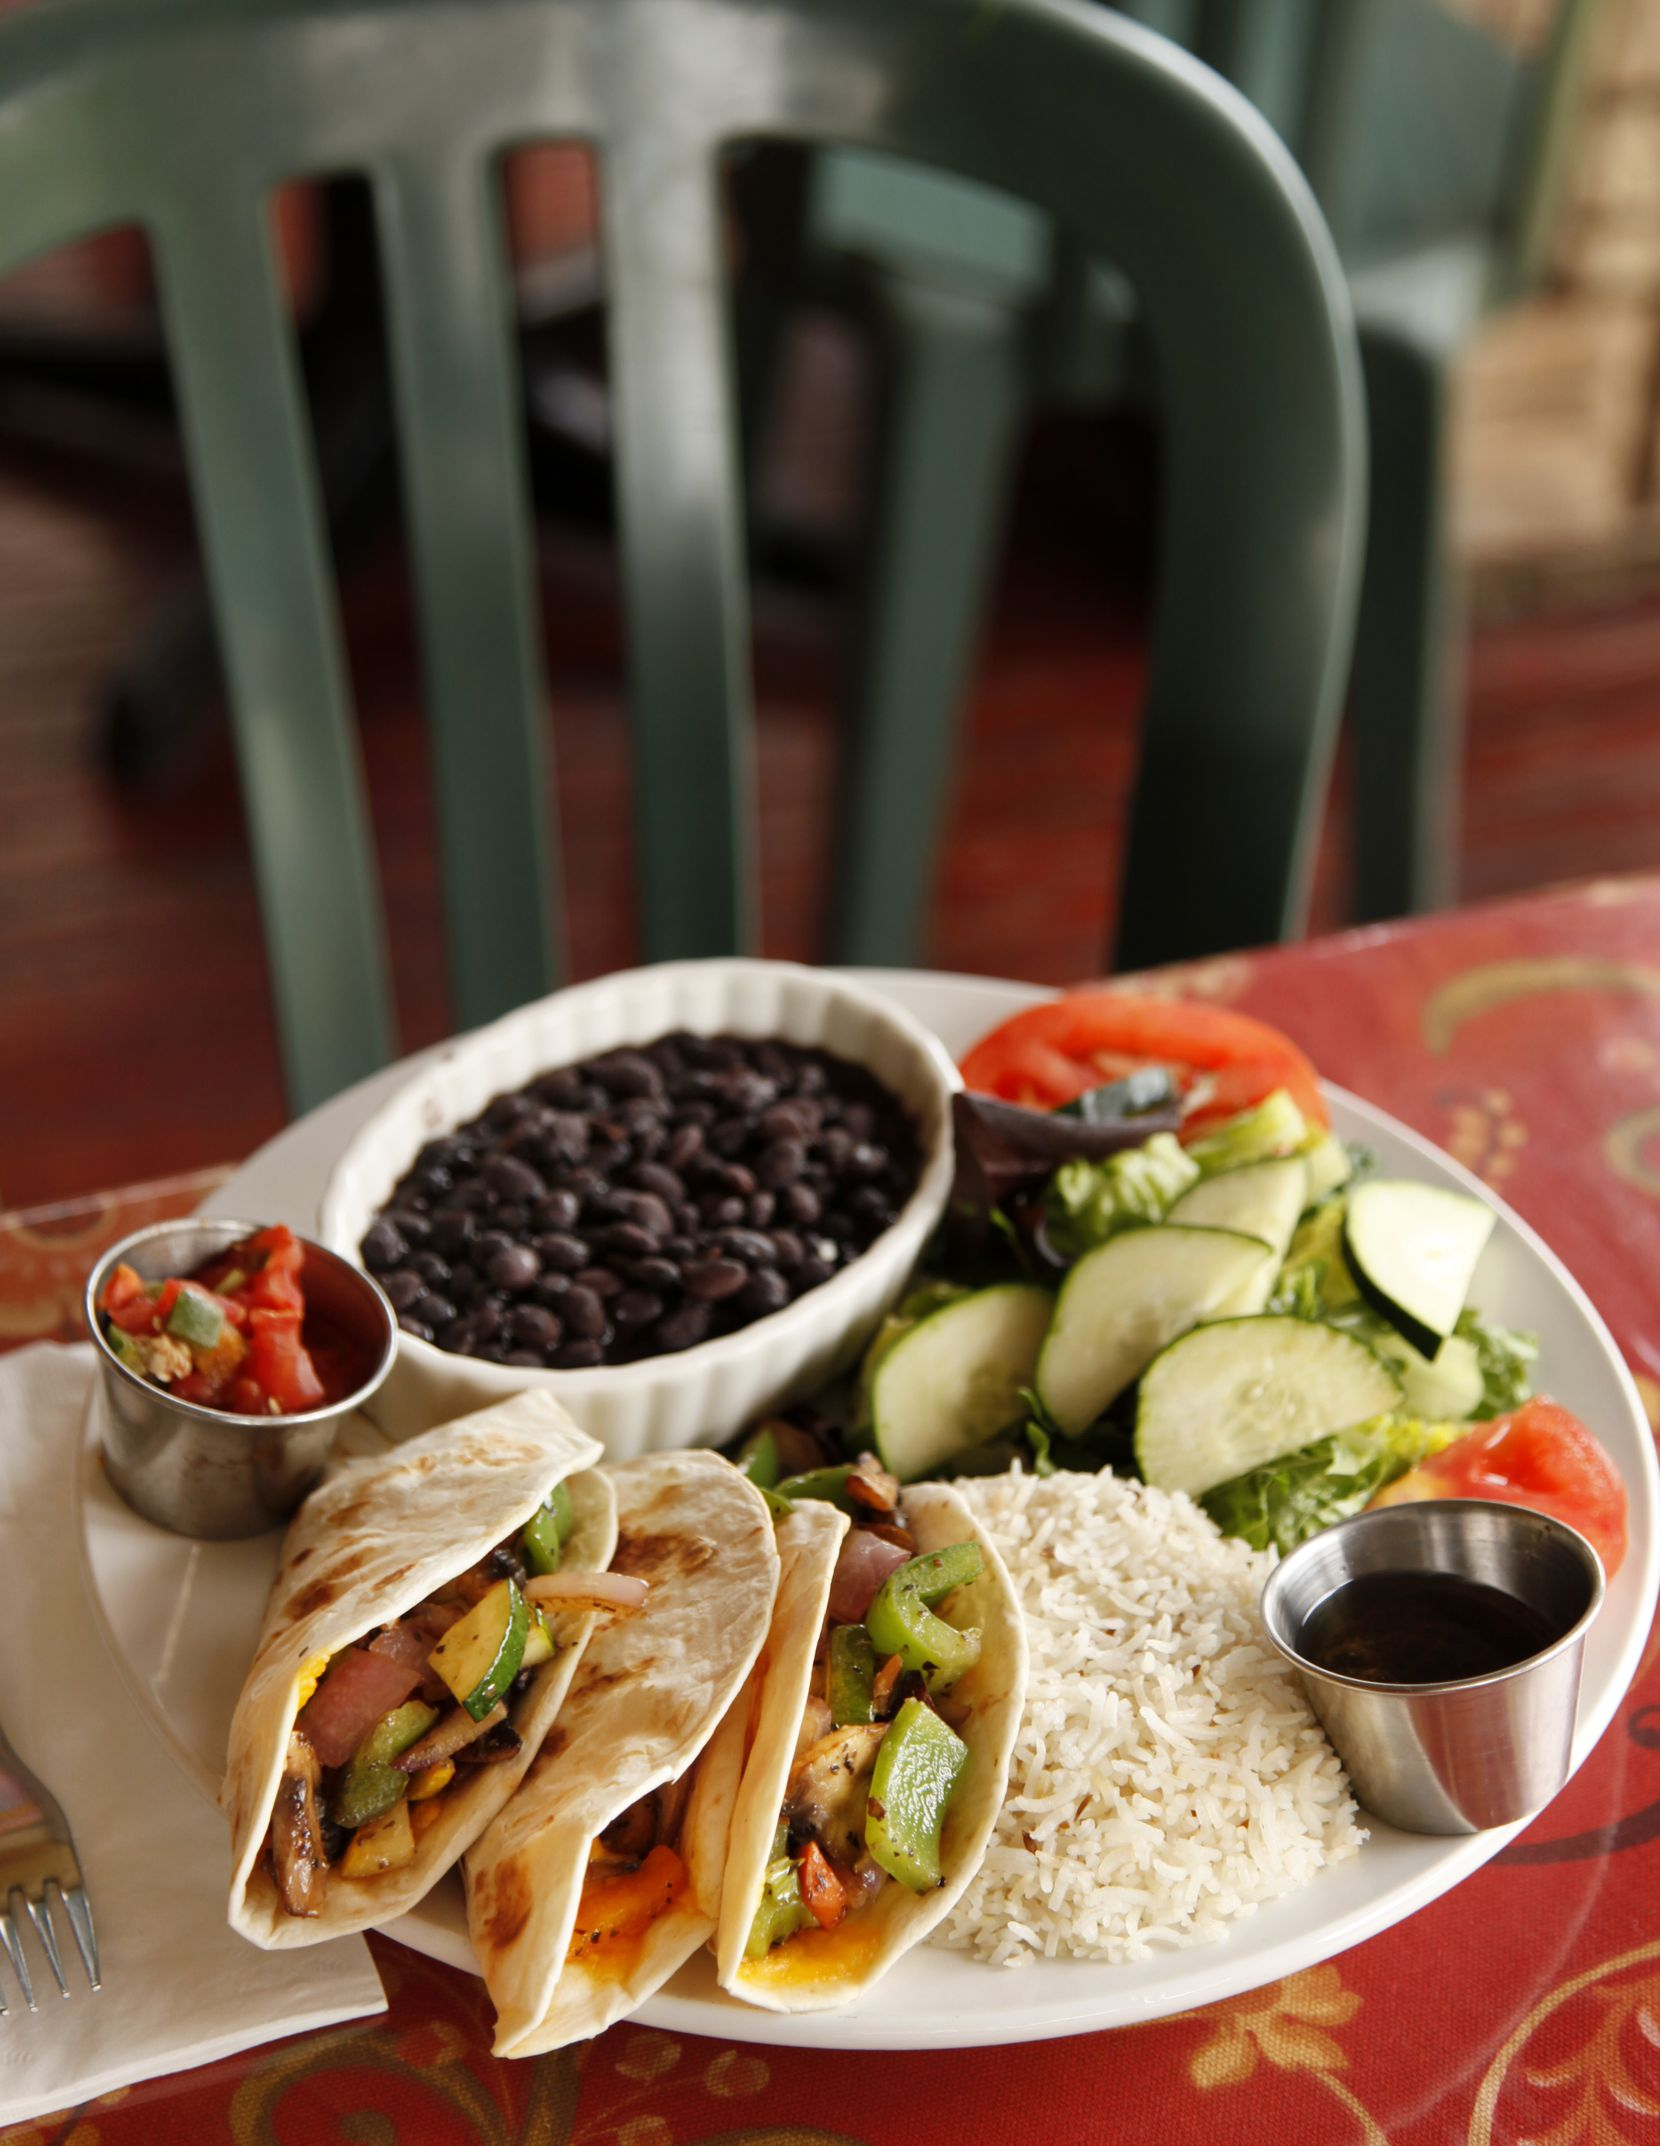 Taco Trinity at Cosmic Cafe, photographed April 26, 2012. Cosmic Cafe, located at 2912 Oak Lawn, specializes in vegetarian cuisine. (Evans Caglage/The Dallas Morning News)